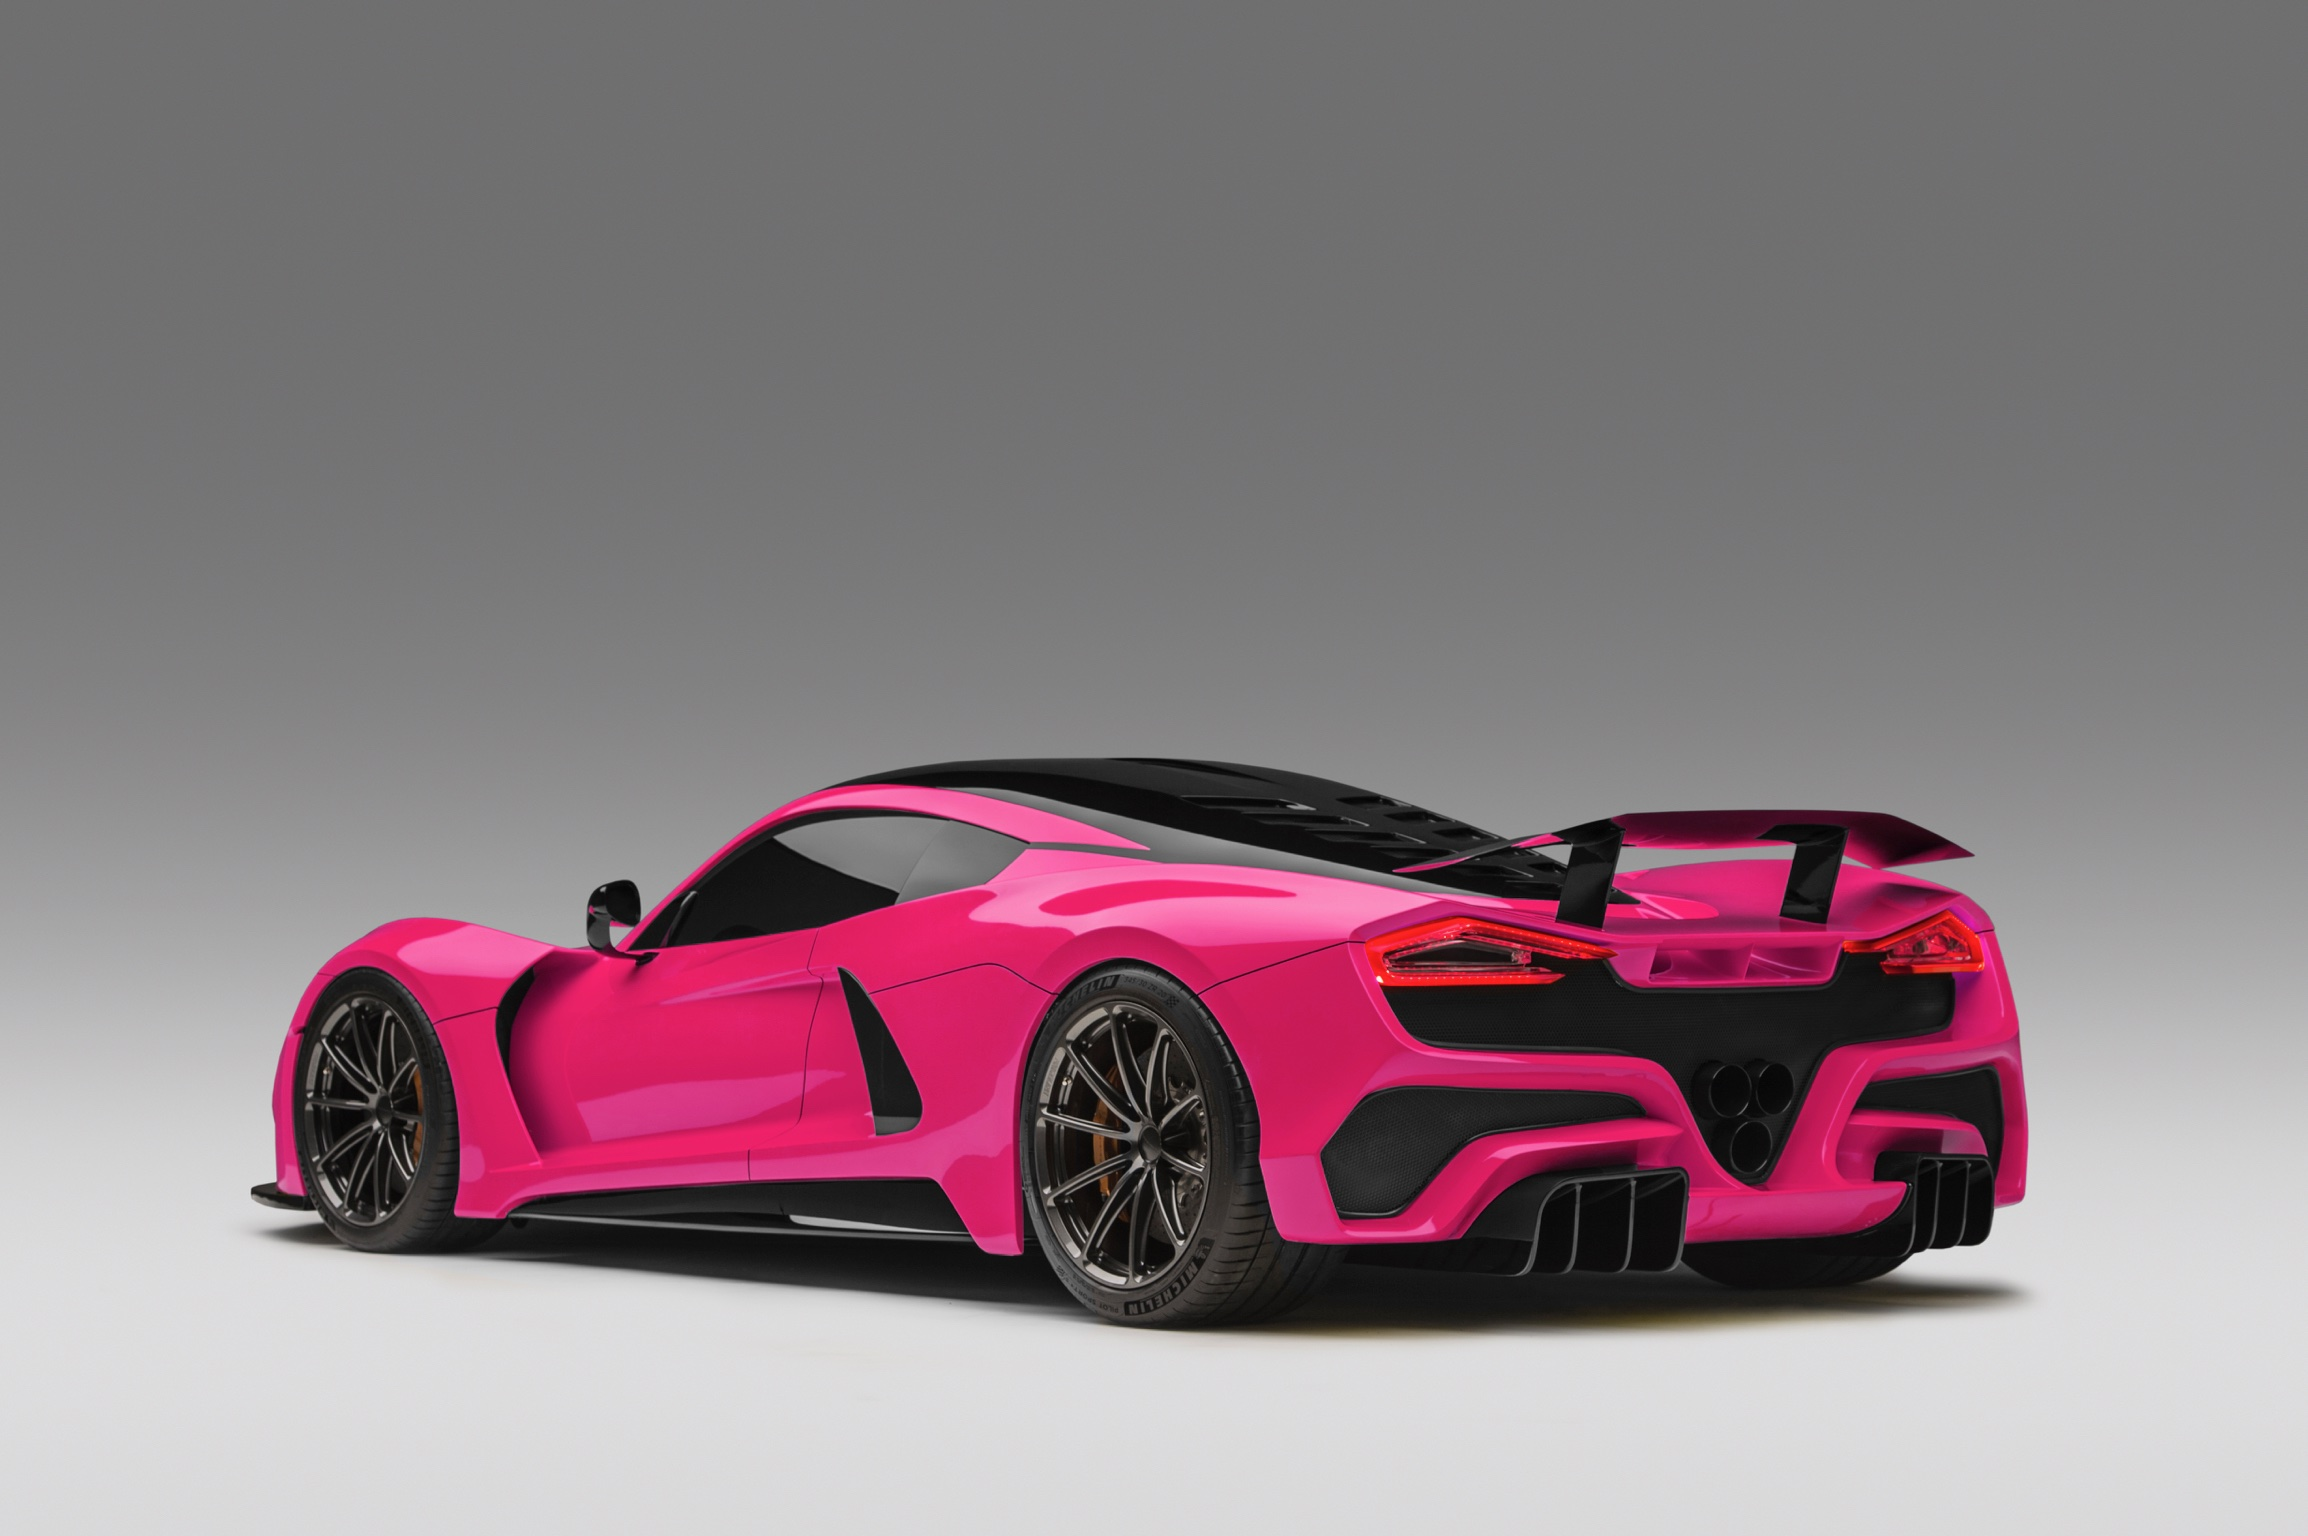 Hennessey Venom F5 in Hot Pink Rear